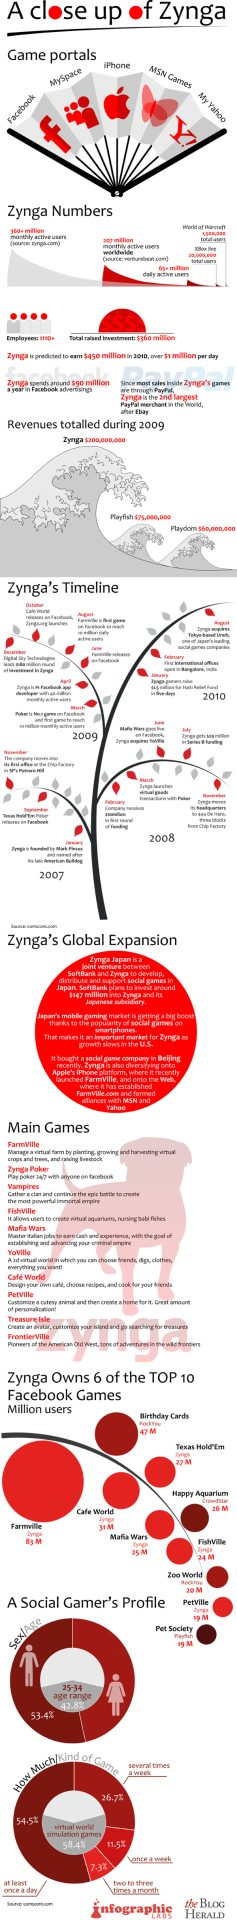 Zynga: statistics, growth and revenue analysis.